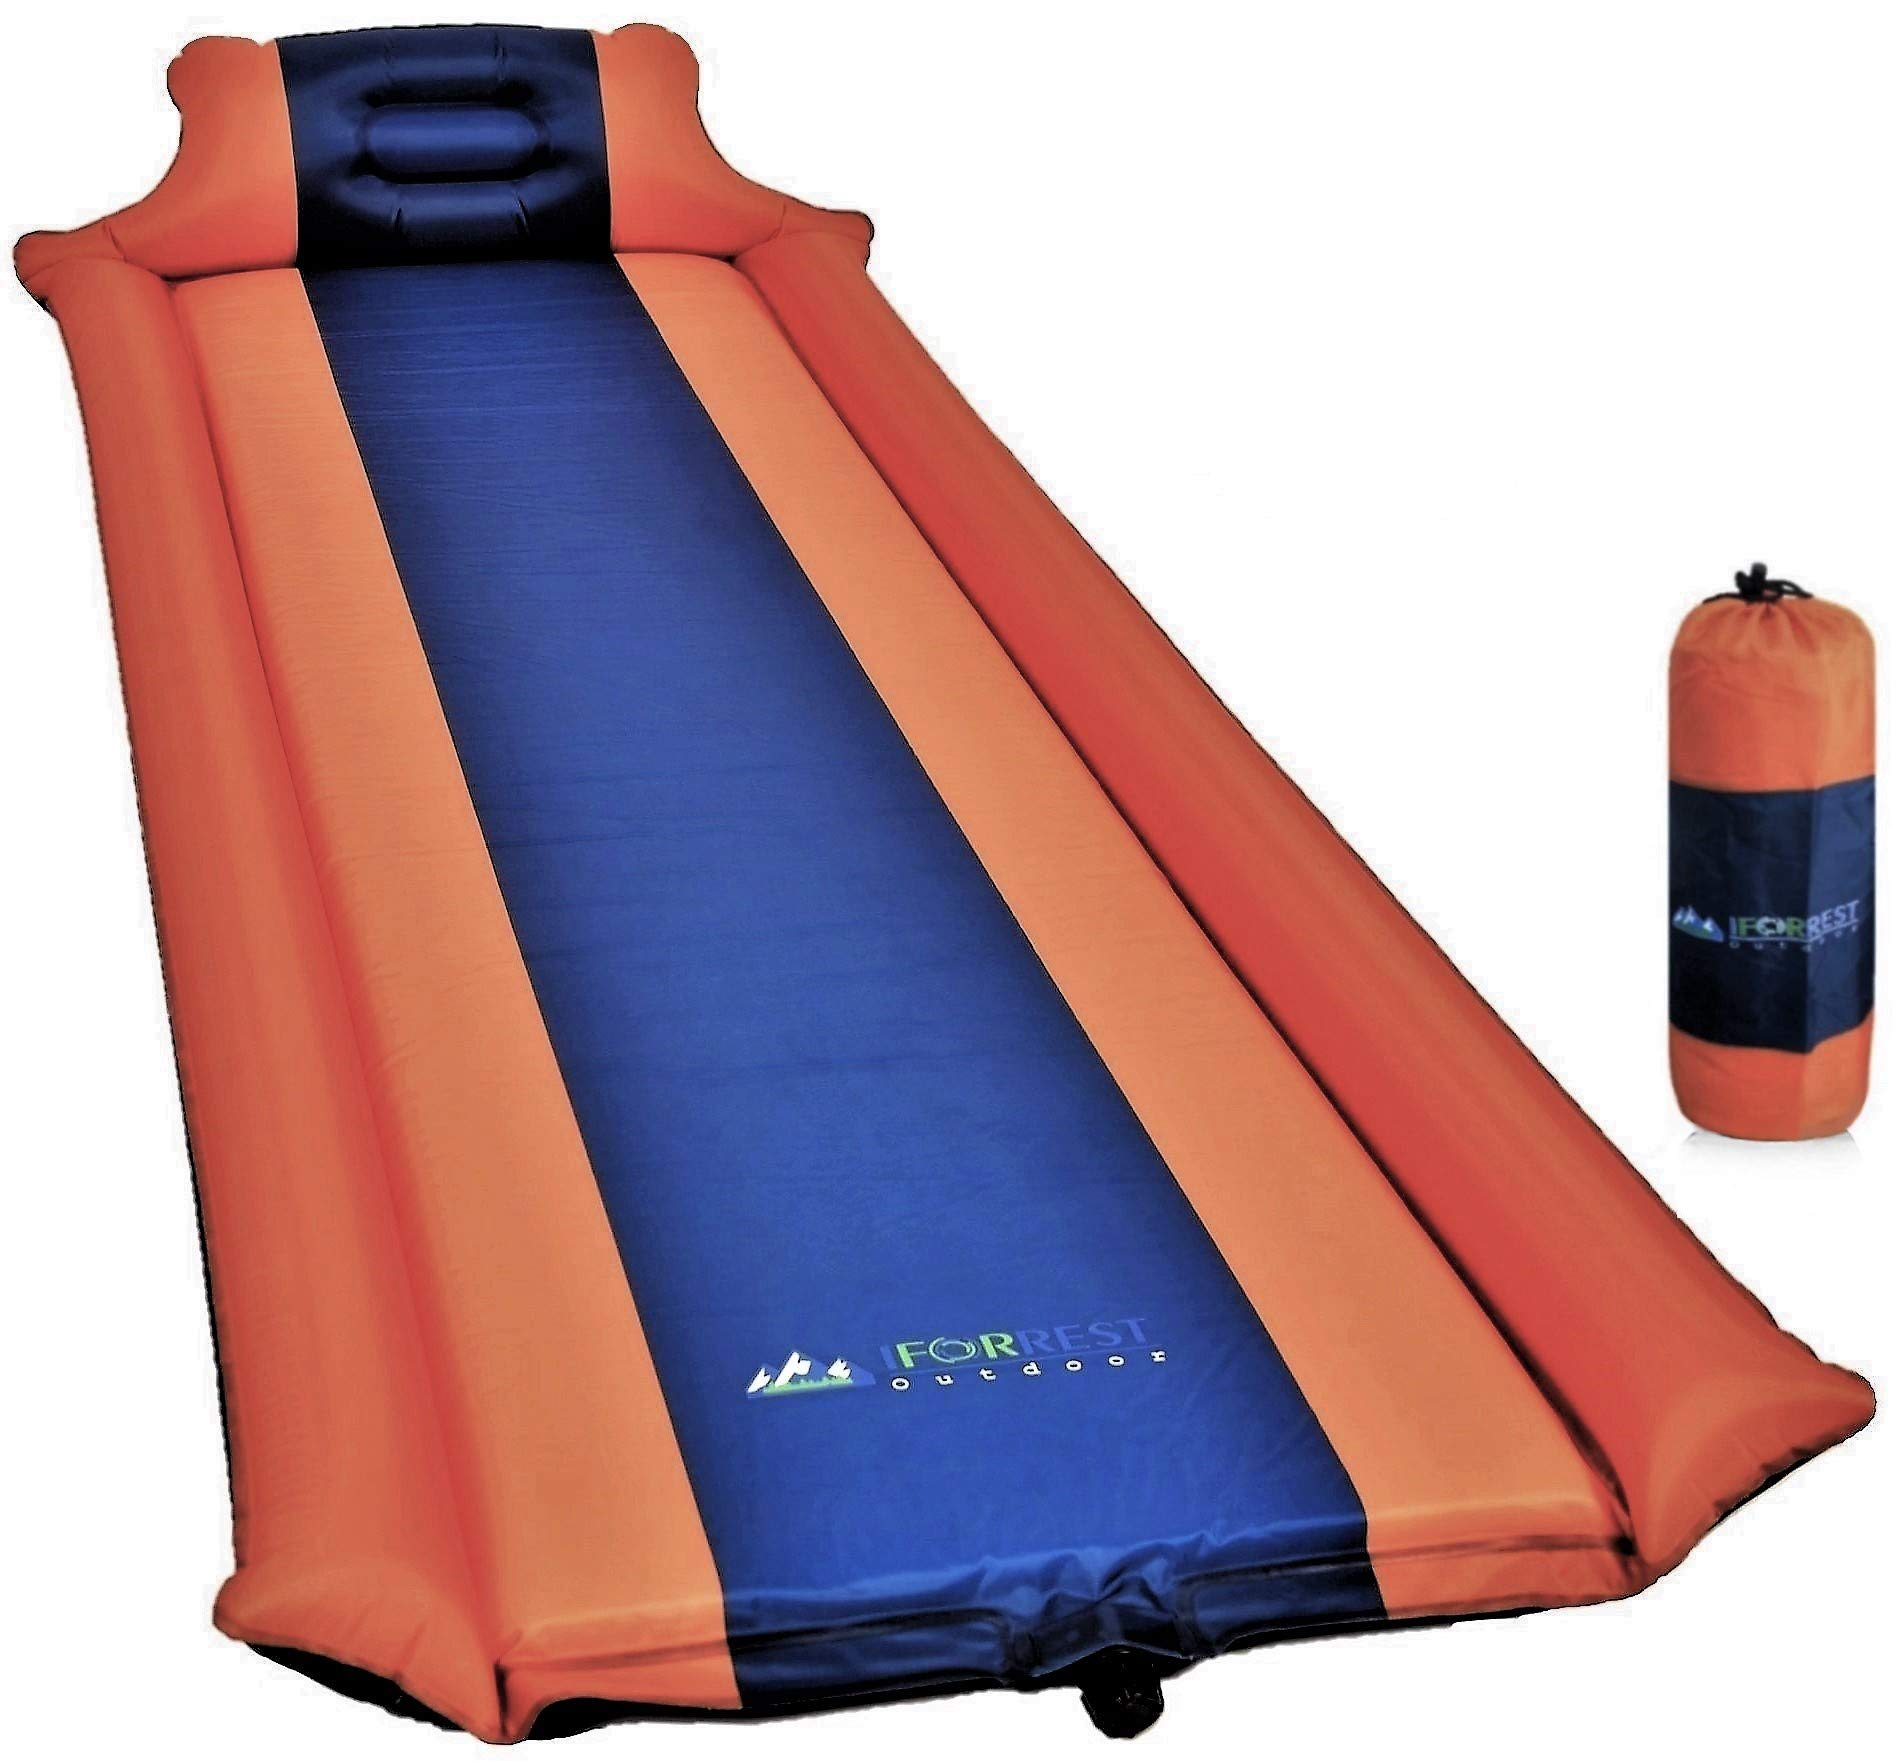 IFORREST Sleeping Pad with Armrest & Pillow - Ultra Comfortable Self-Inflating Foam Air Mattress is Ideal for Travel, Camping & Hiking, Backpacking, Cot, Hammock, Tent & Sleeping Bag! (Blue) (Orange) by IFORREST